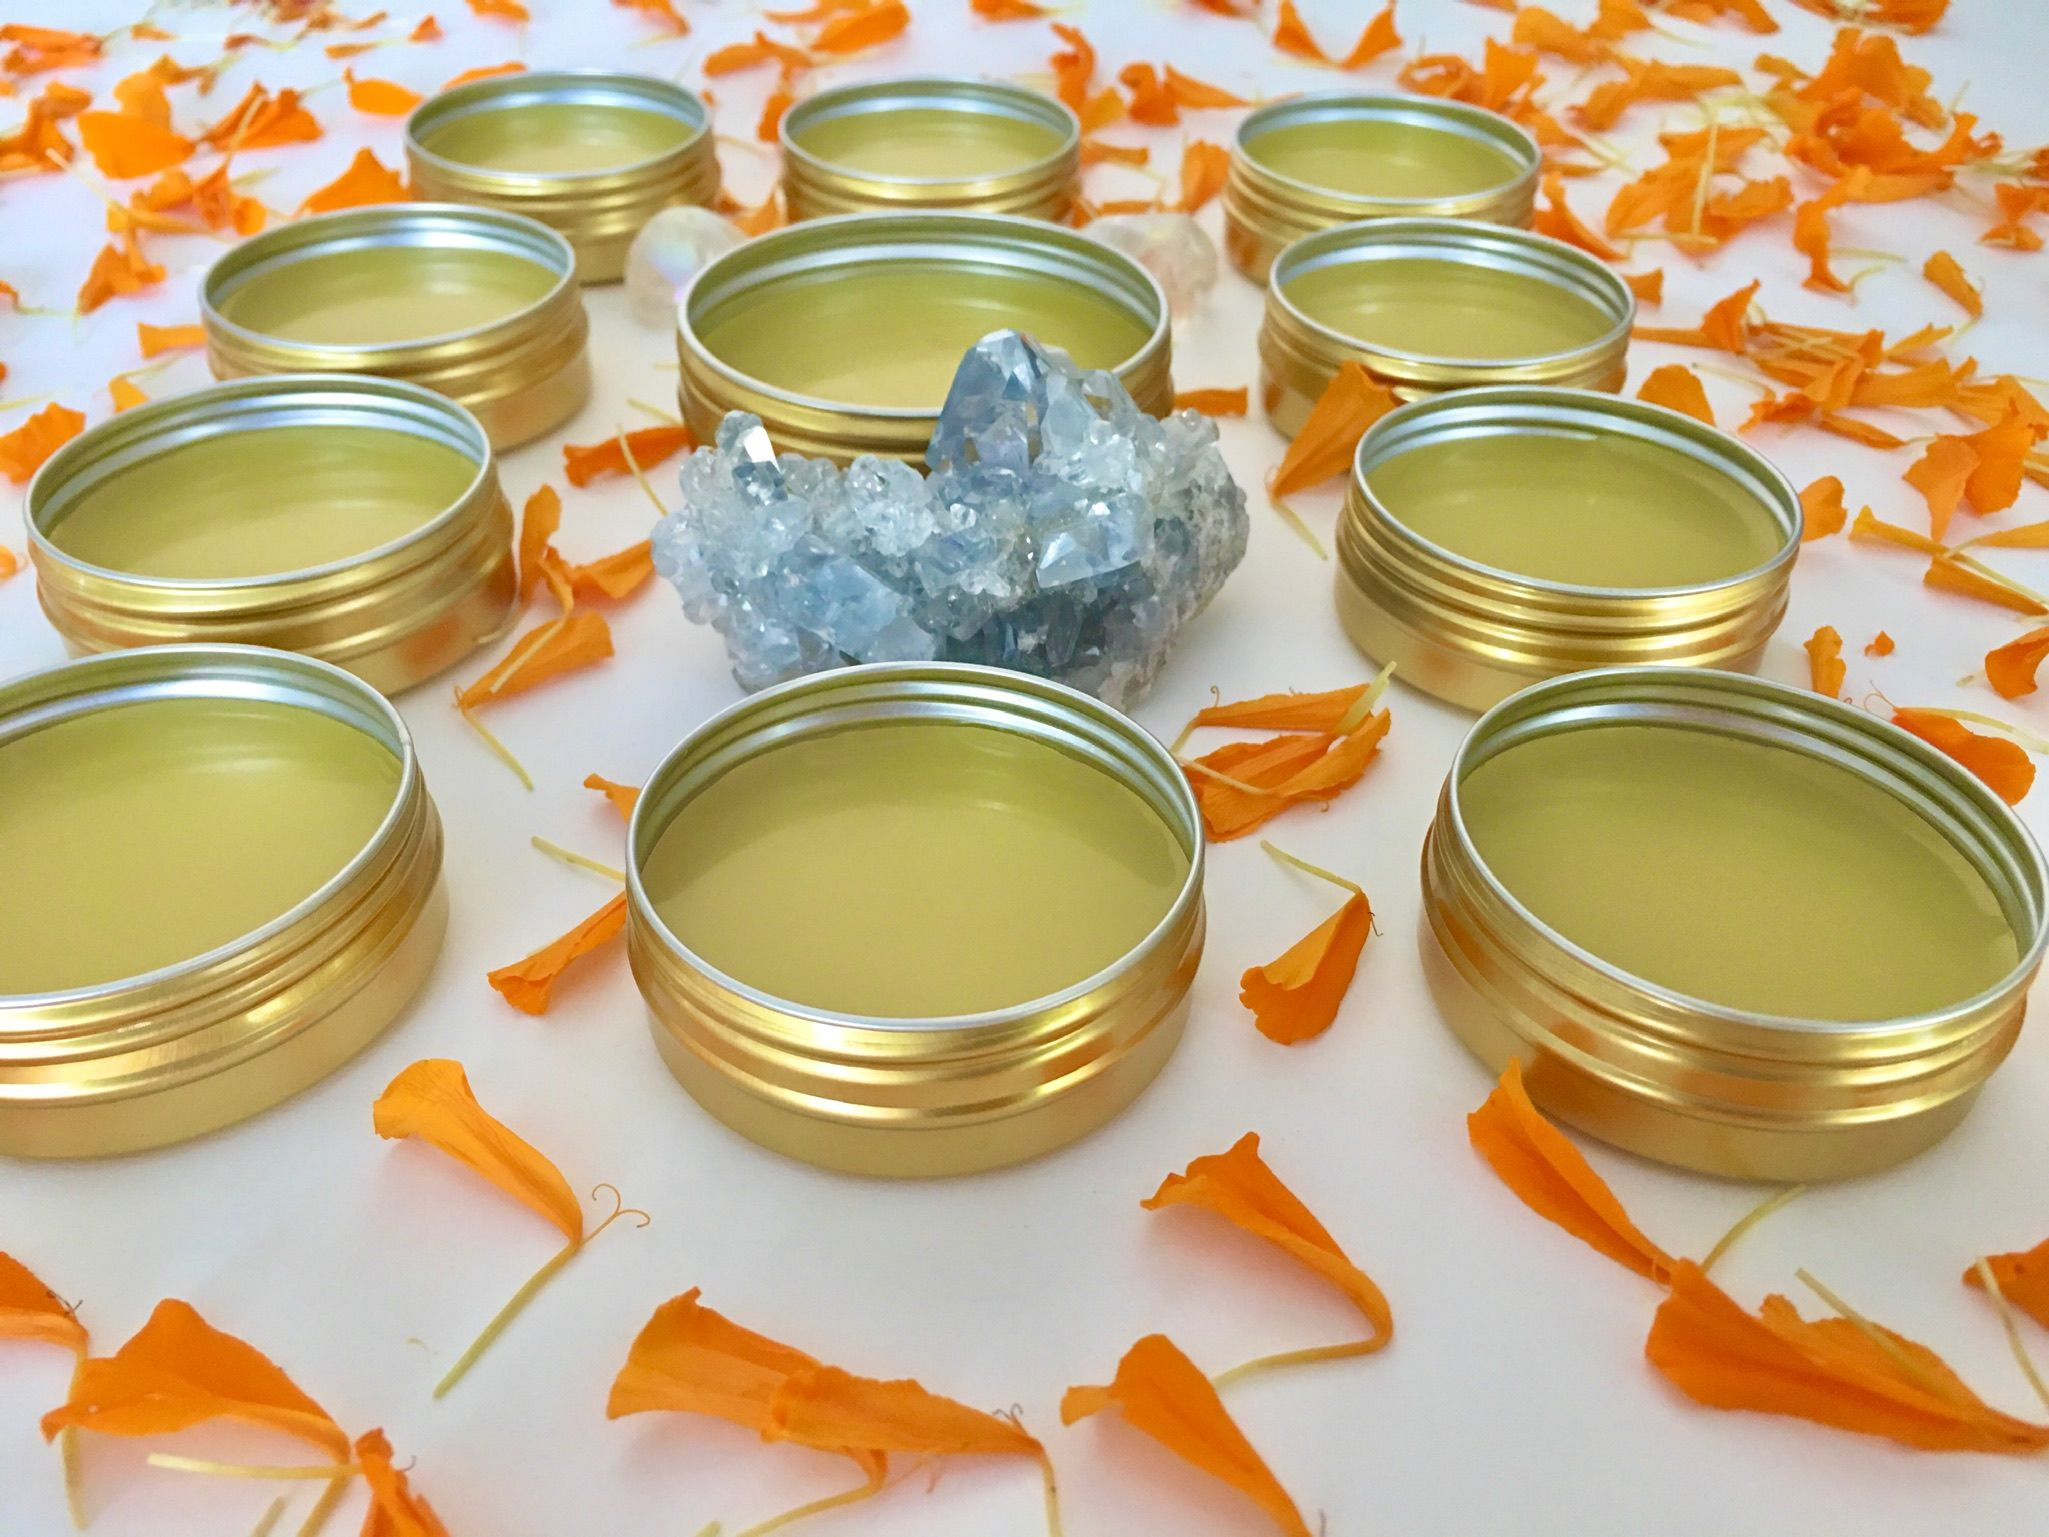 Professional Natural Skin Care Product Making Course